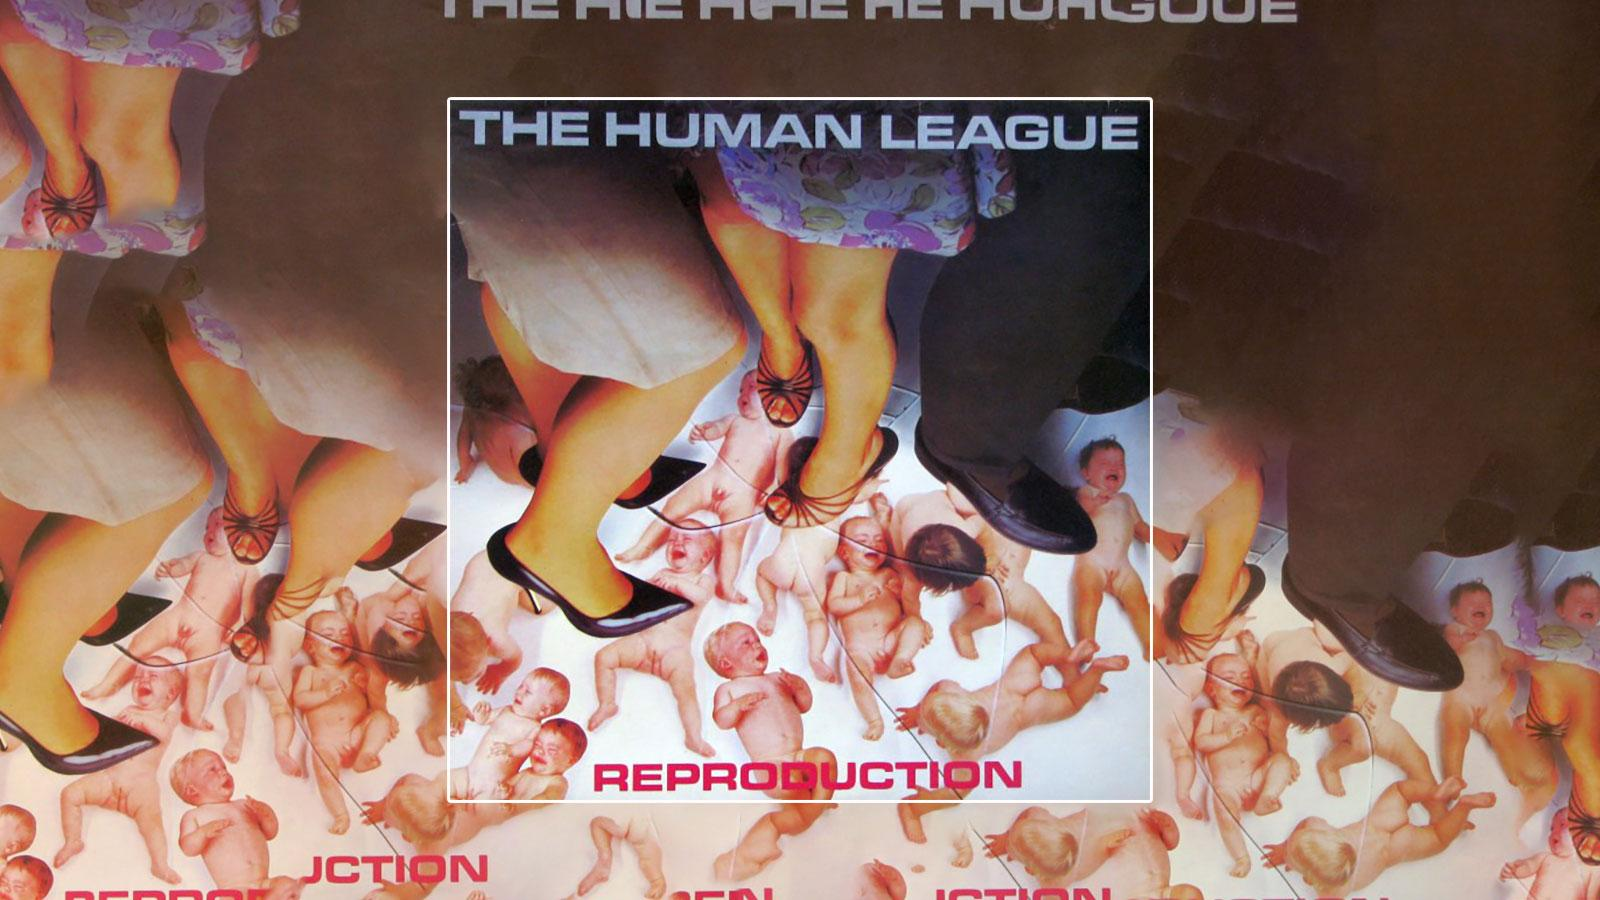 Roundtable-The Human League